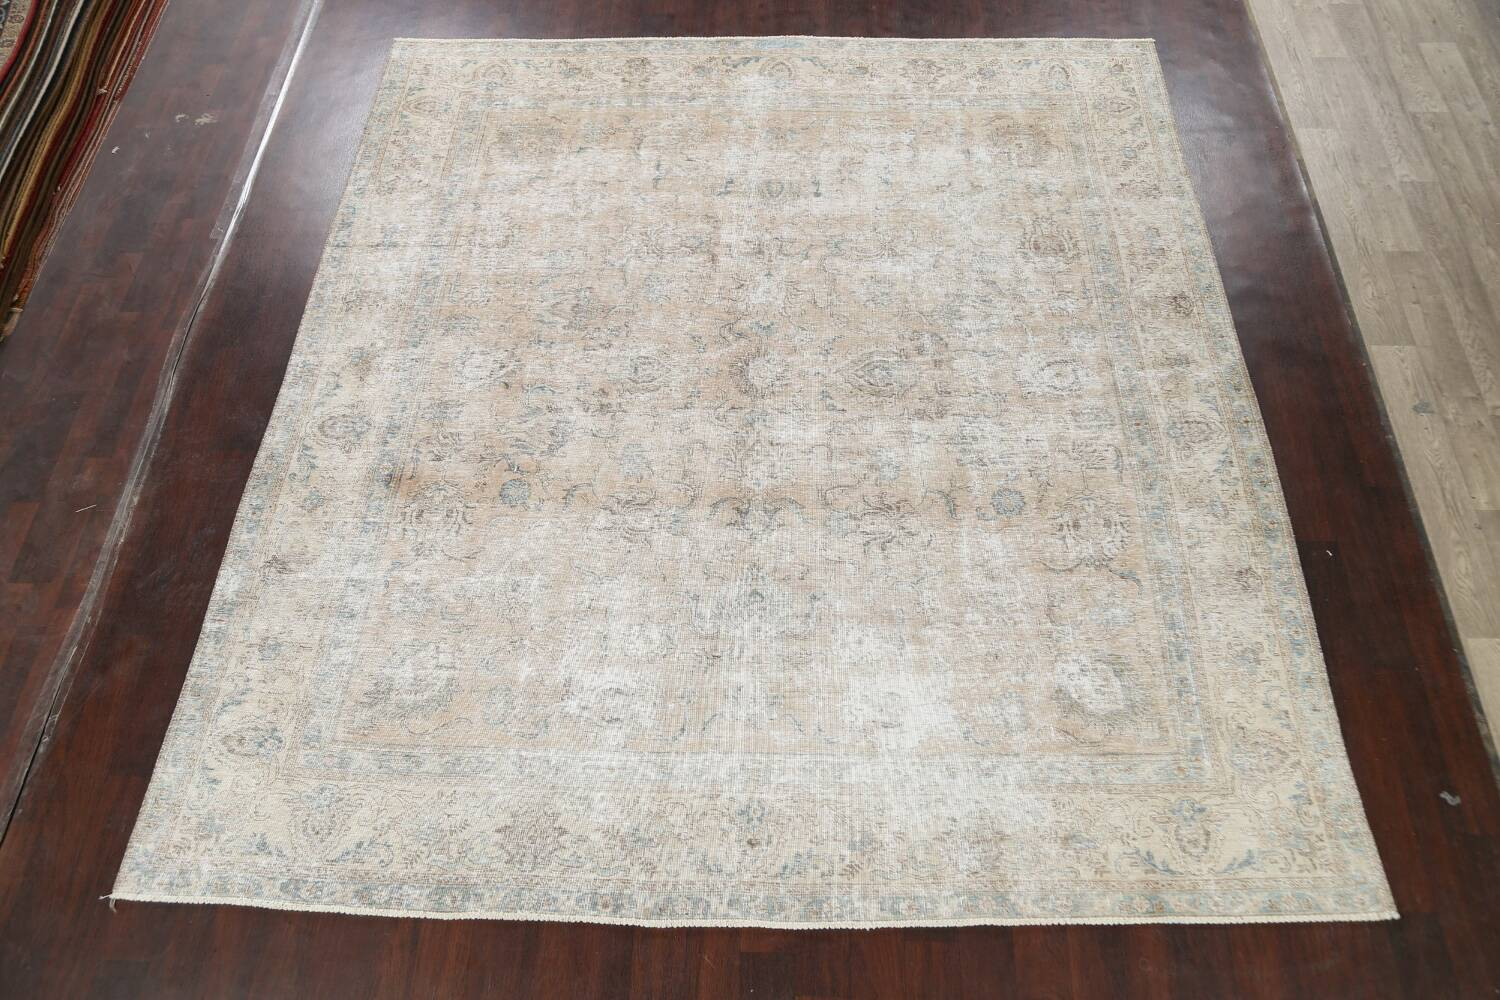 Muted Floral Tabriz Persian Area Rug 10x11 image 2